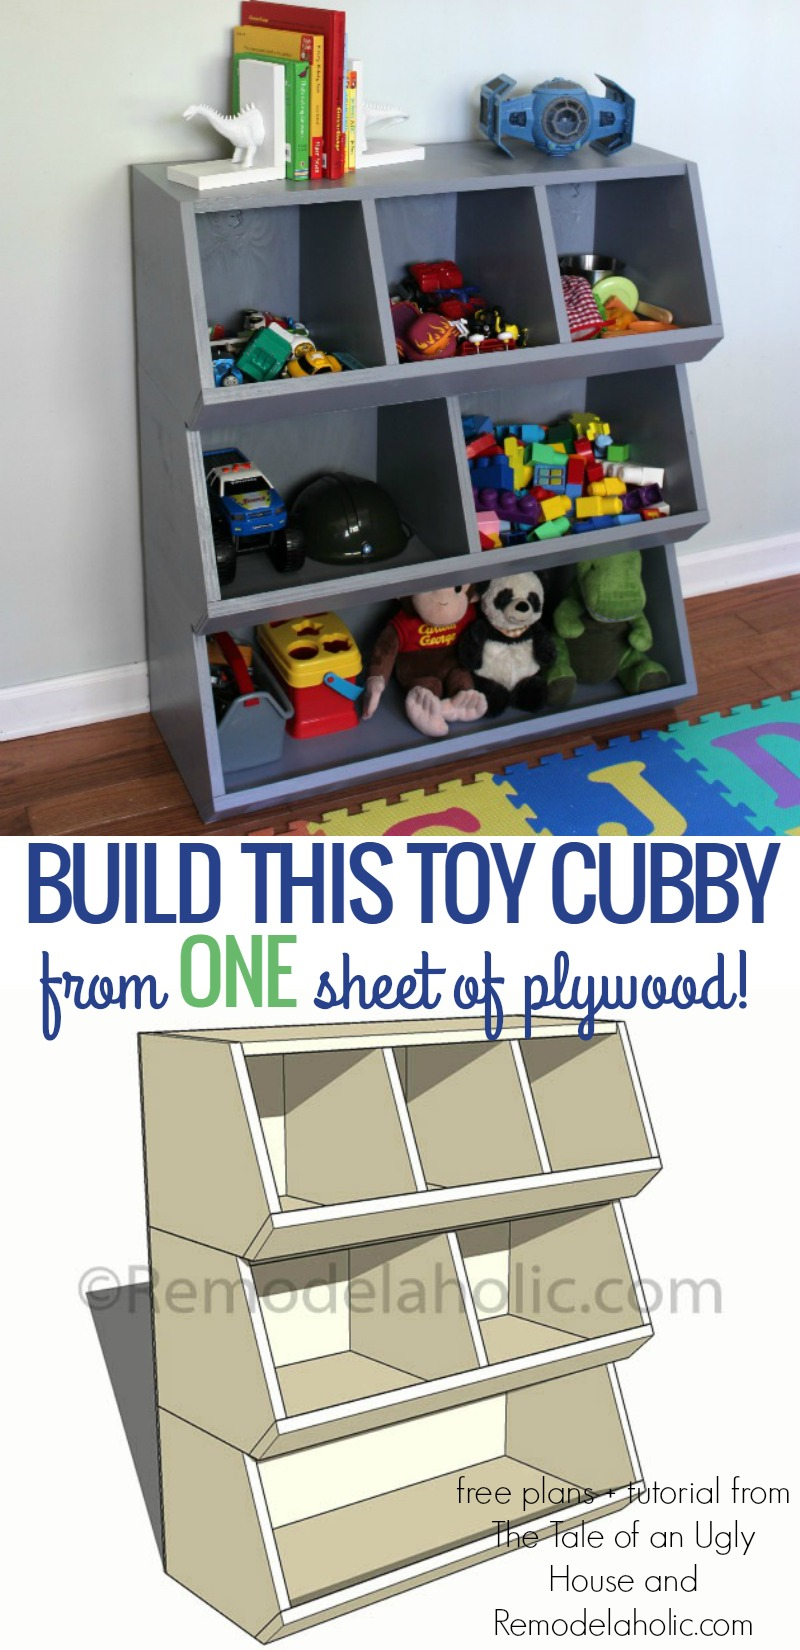 Toys Storage Ideas For Boys : Remodelaholic how to build a toy cubby shelf boy s